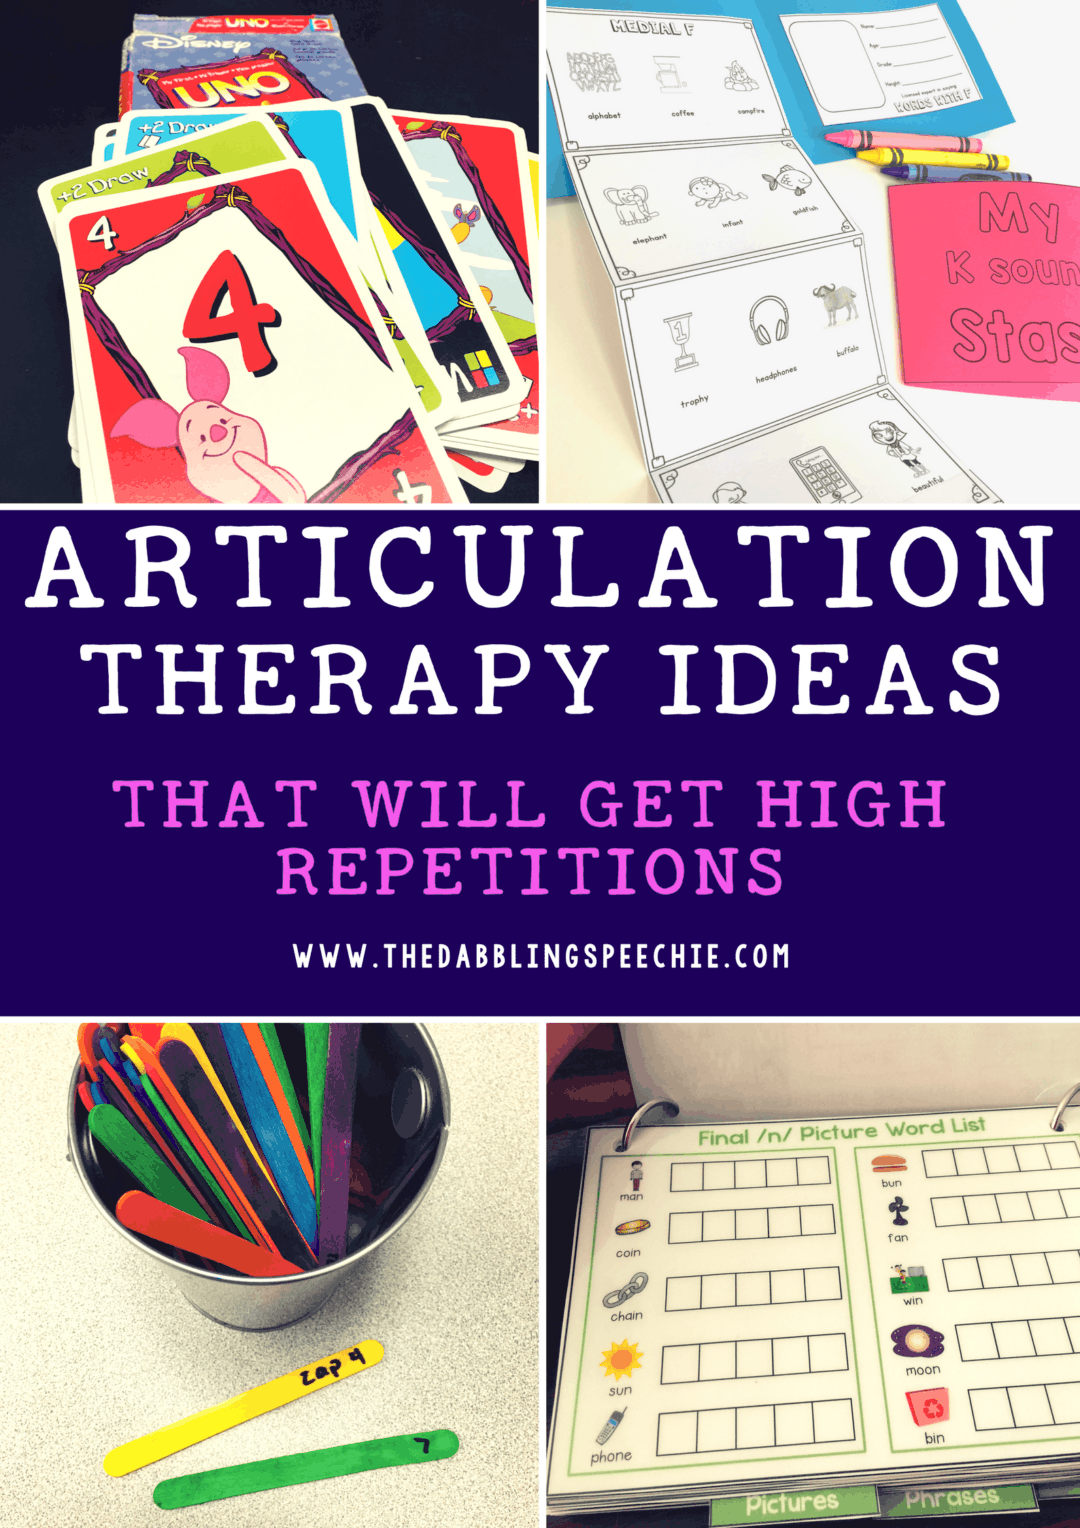 Articulation Ideas That Will Get High Repetitions